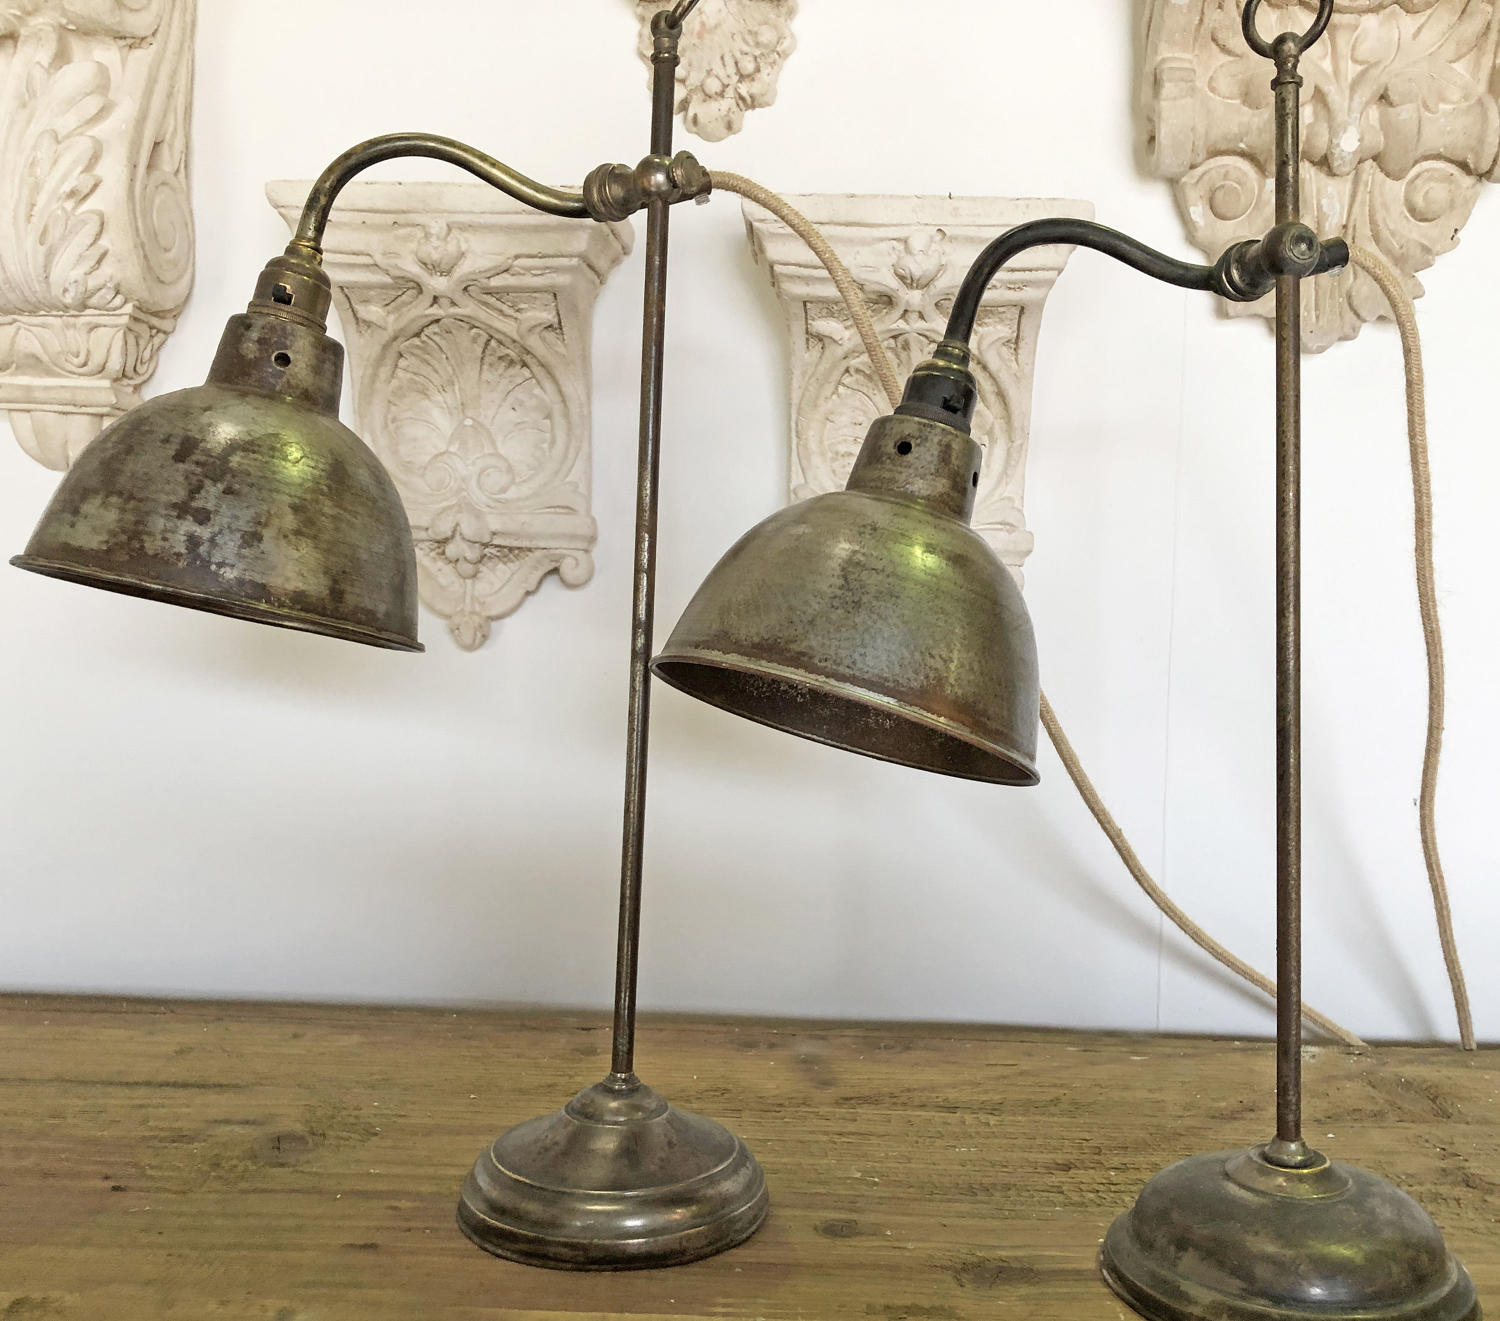 2 Vintage Brass Desk Lamps - circa 1950